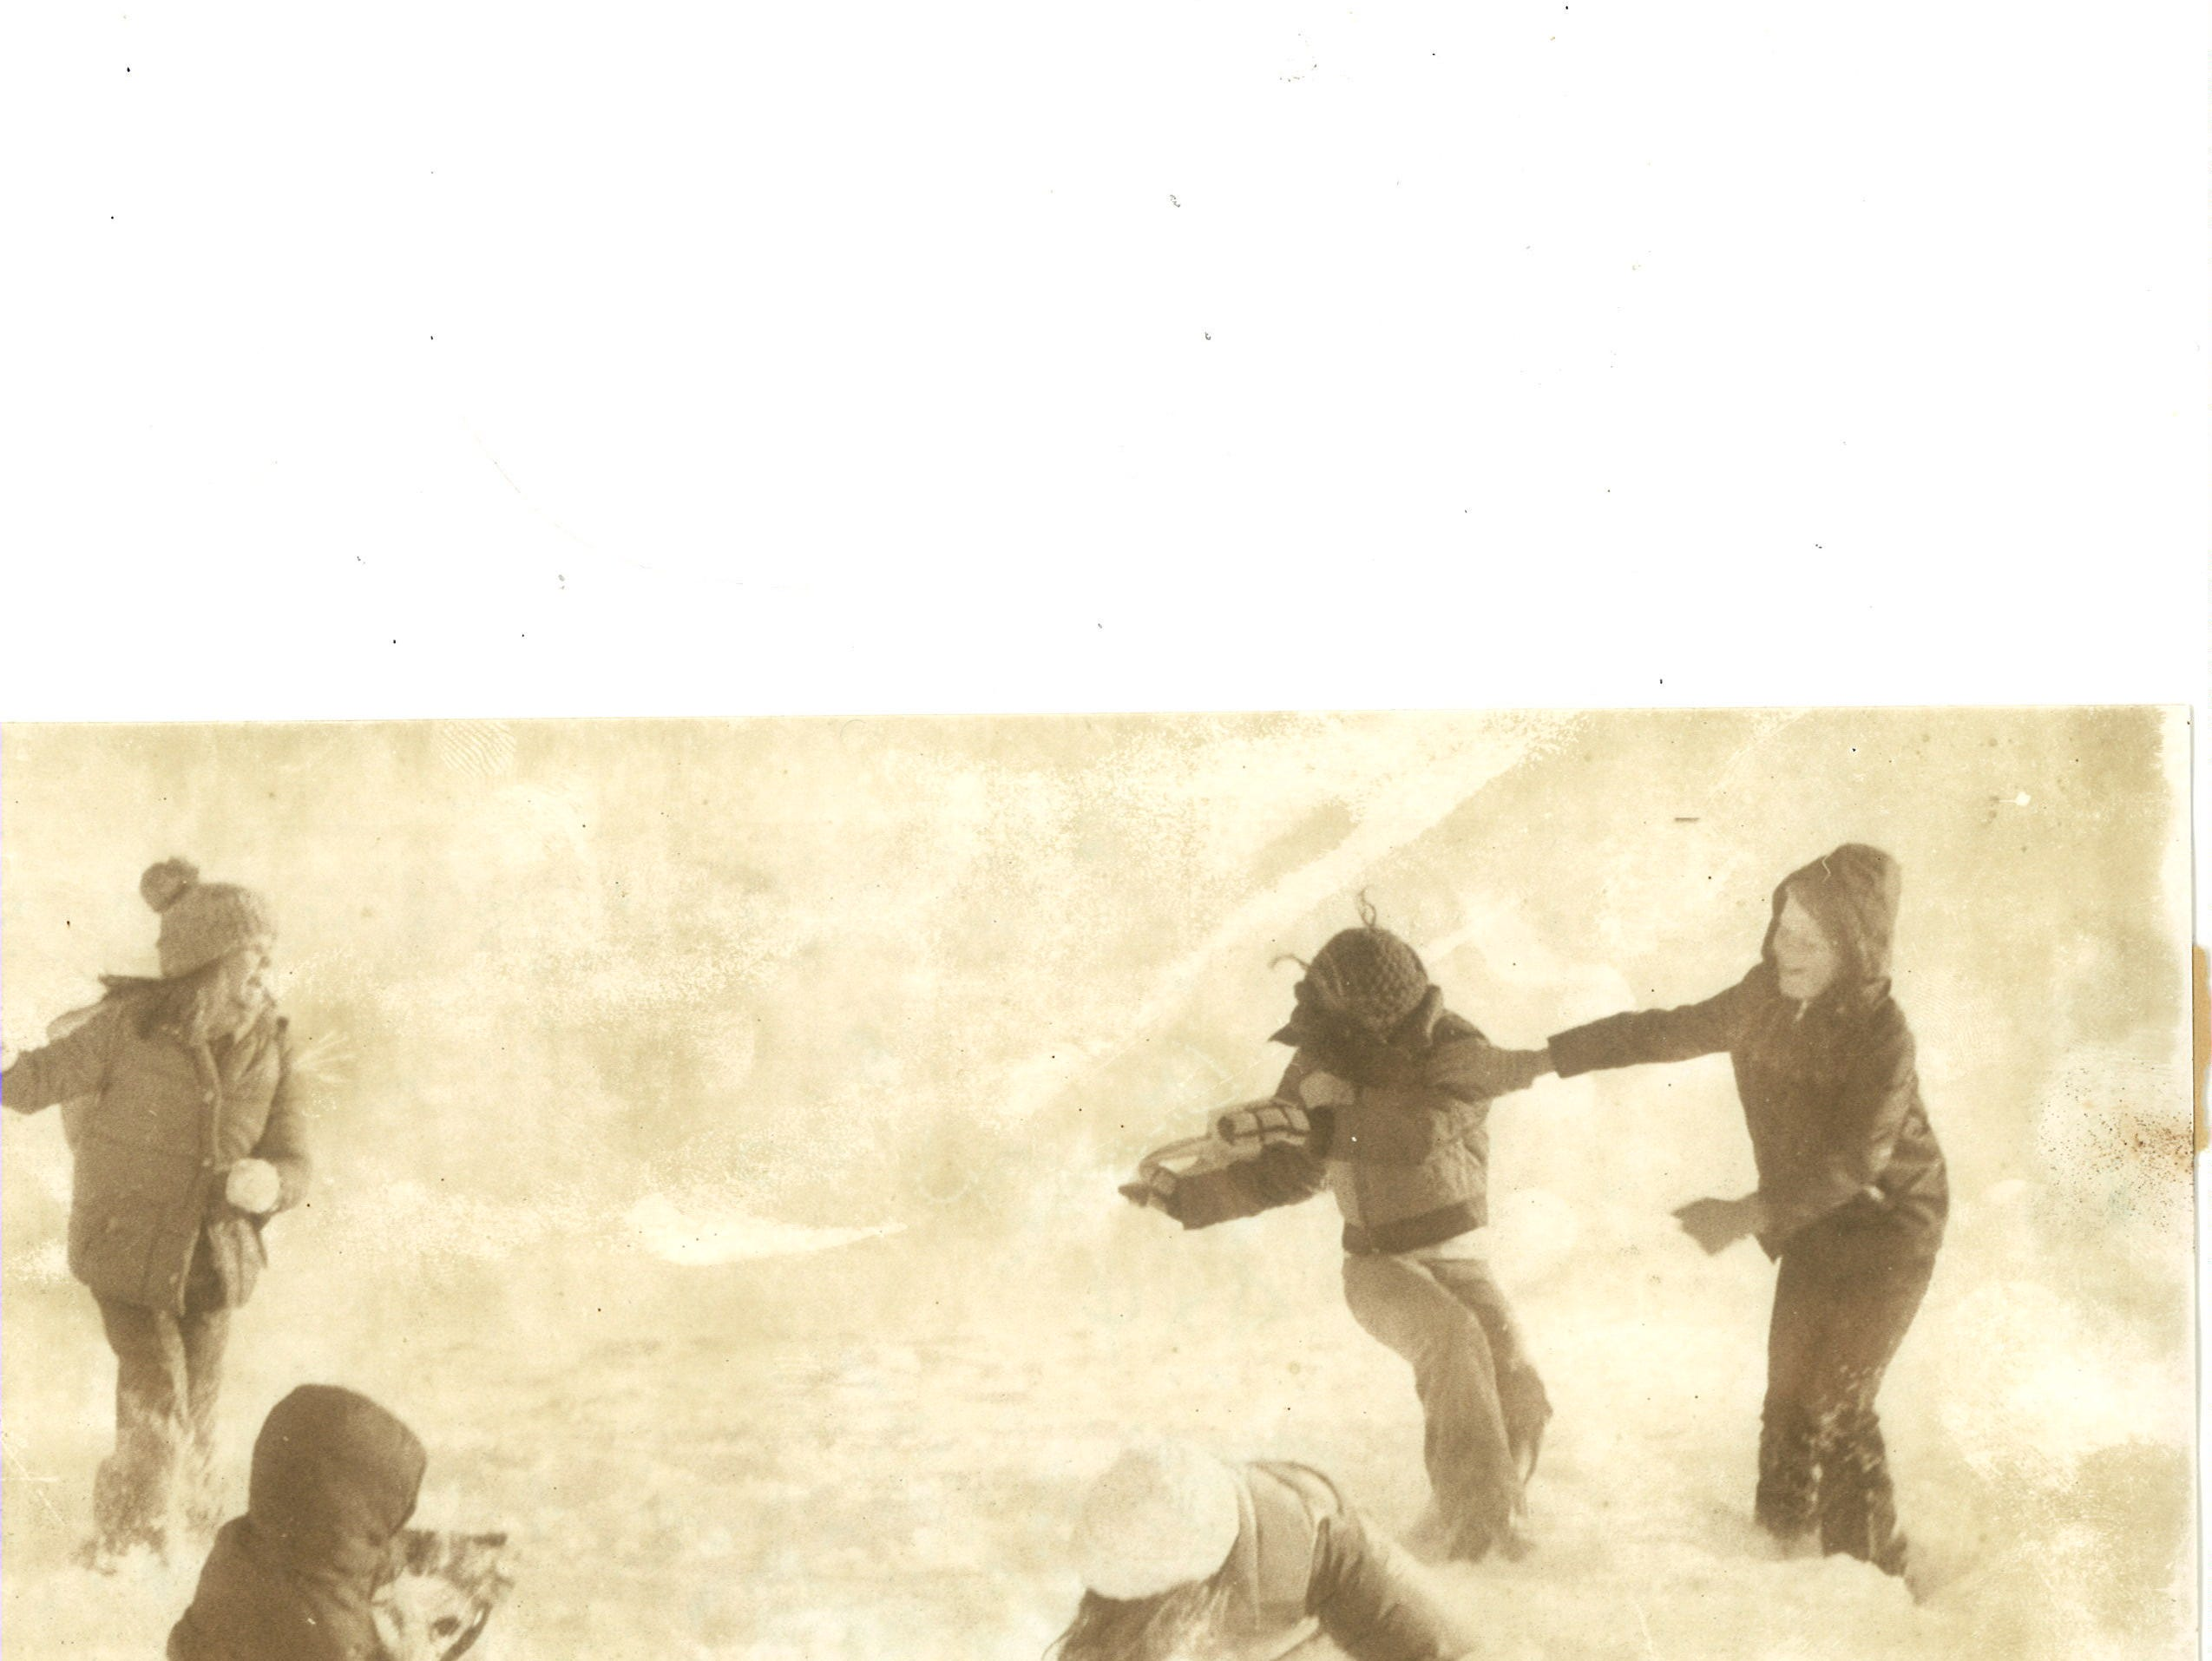 Life in Great Falls 40 years ago: A snowball fight breaks out among young kids